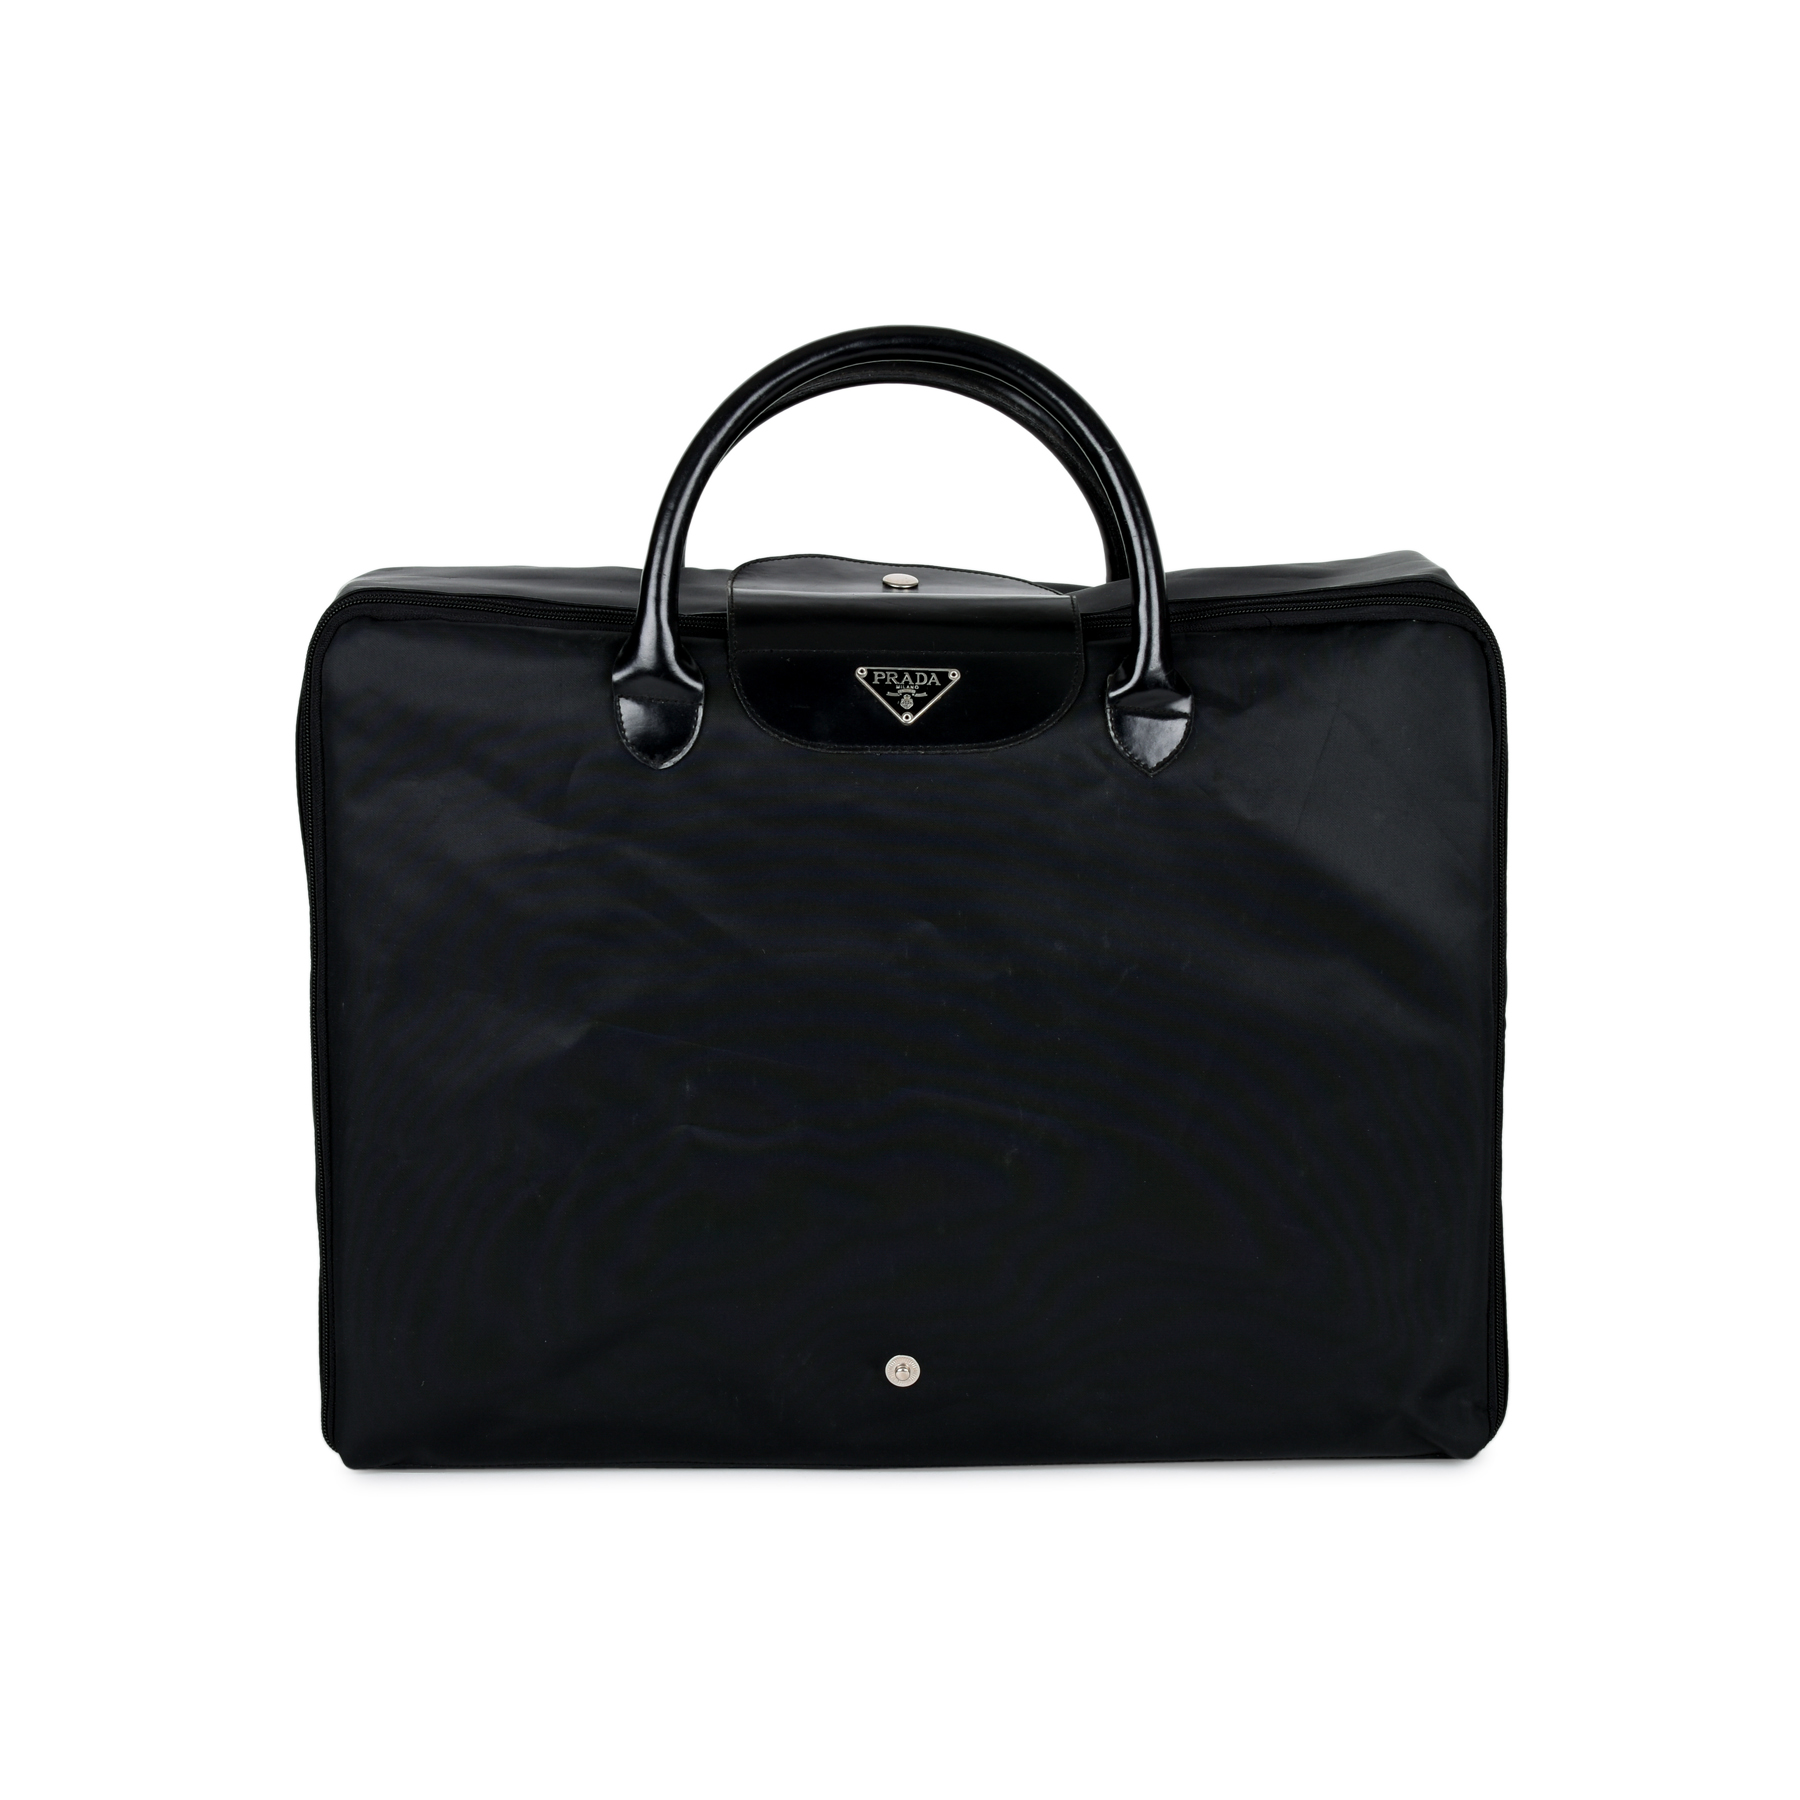 6496d829b15e Authentic Second Hand Prada Overnight Travel Bag (PSS-430-00030) | THE  FIFTH COLLECTION